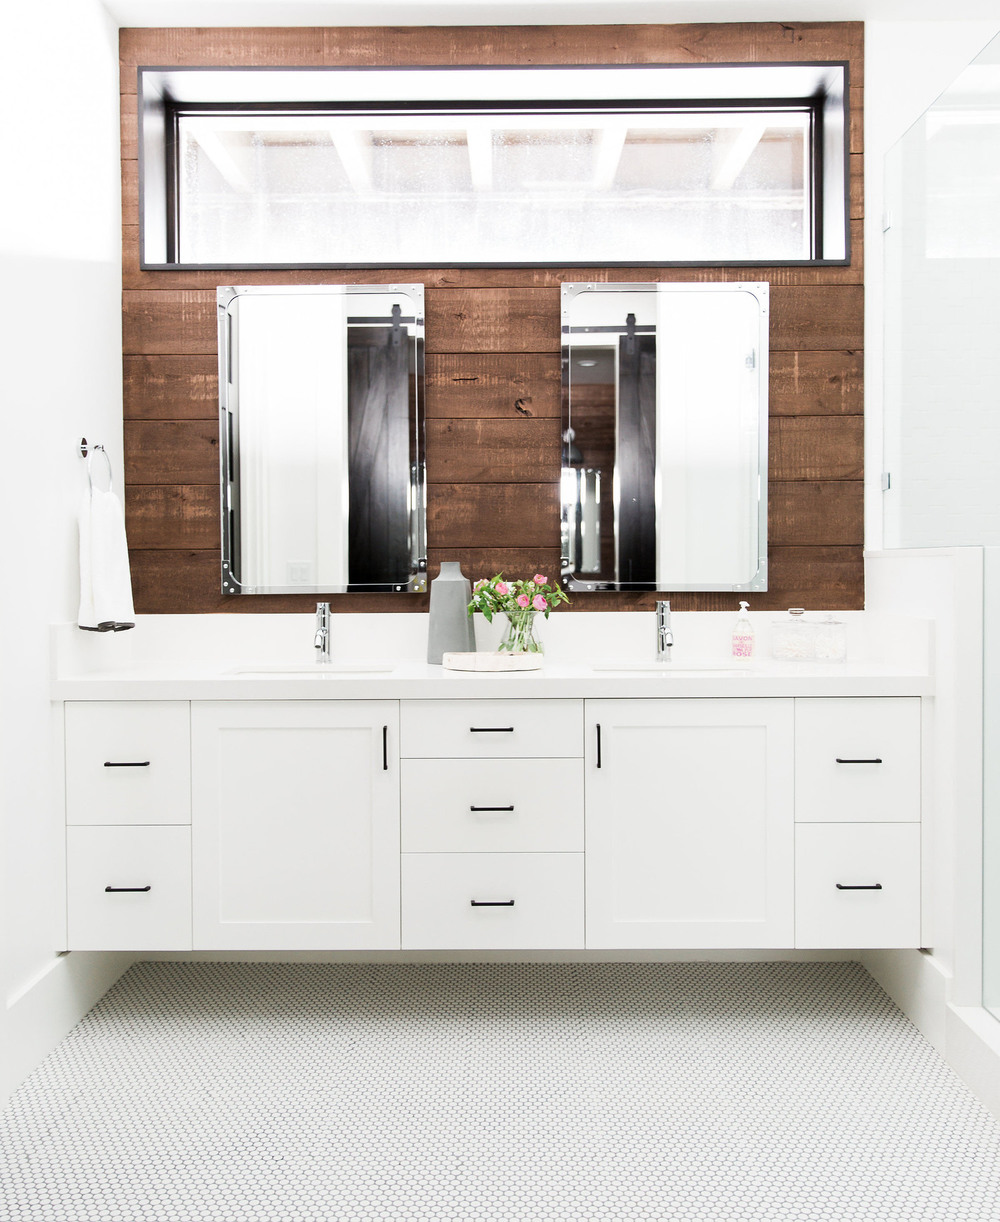 Double sink and mirror bathroom vanity